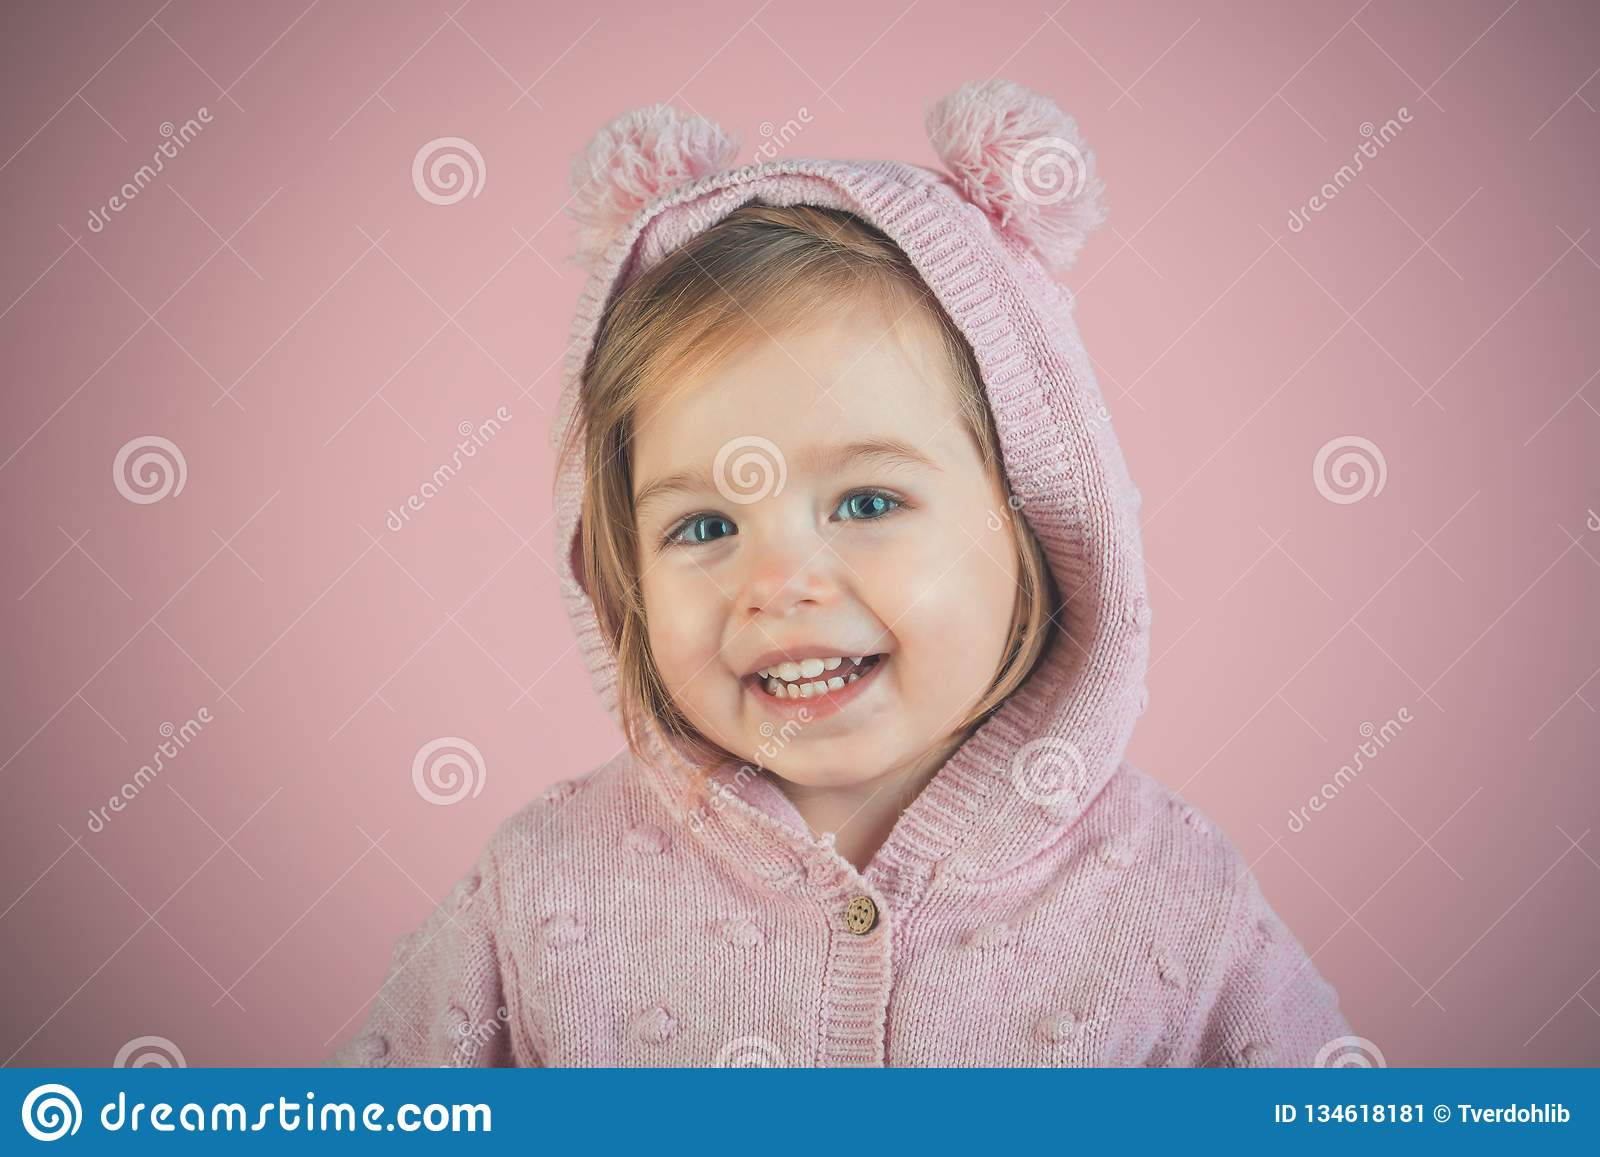 Little stylish beauty. having fun. little girl child smiling. Little treasure. small happy girl. childhood and happiness